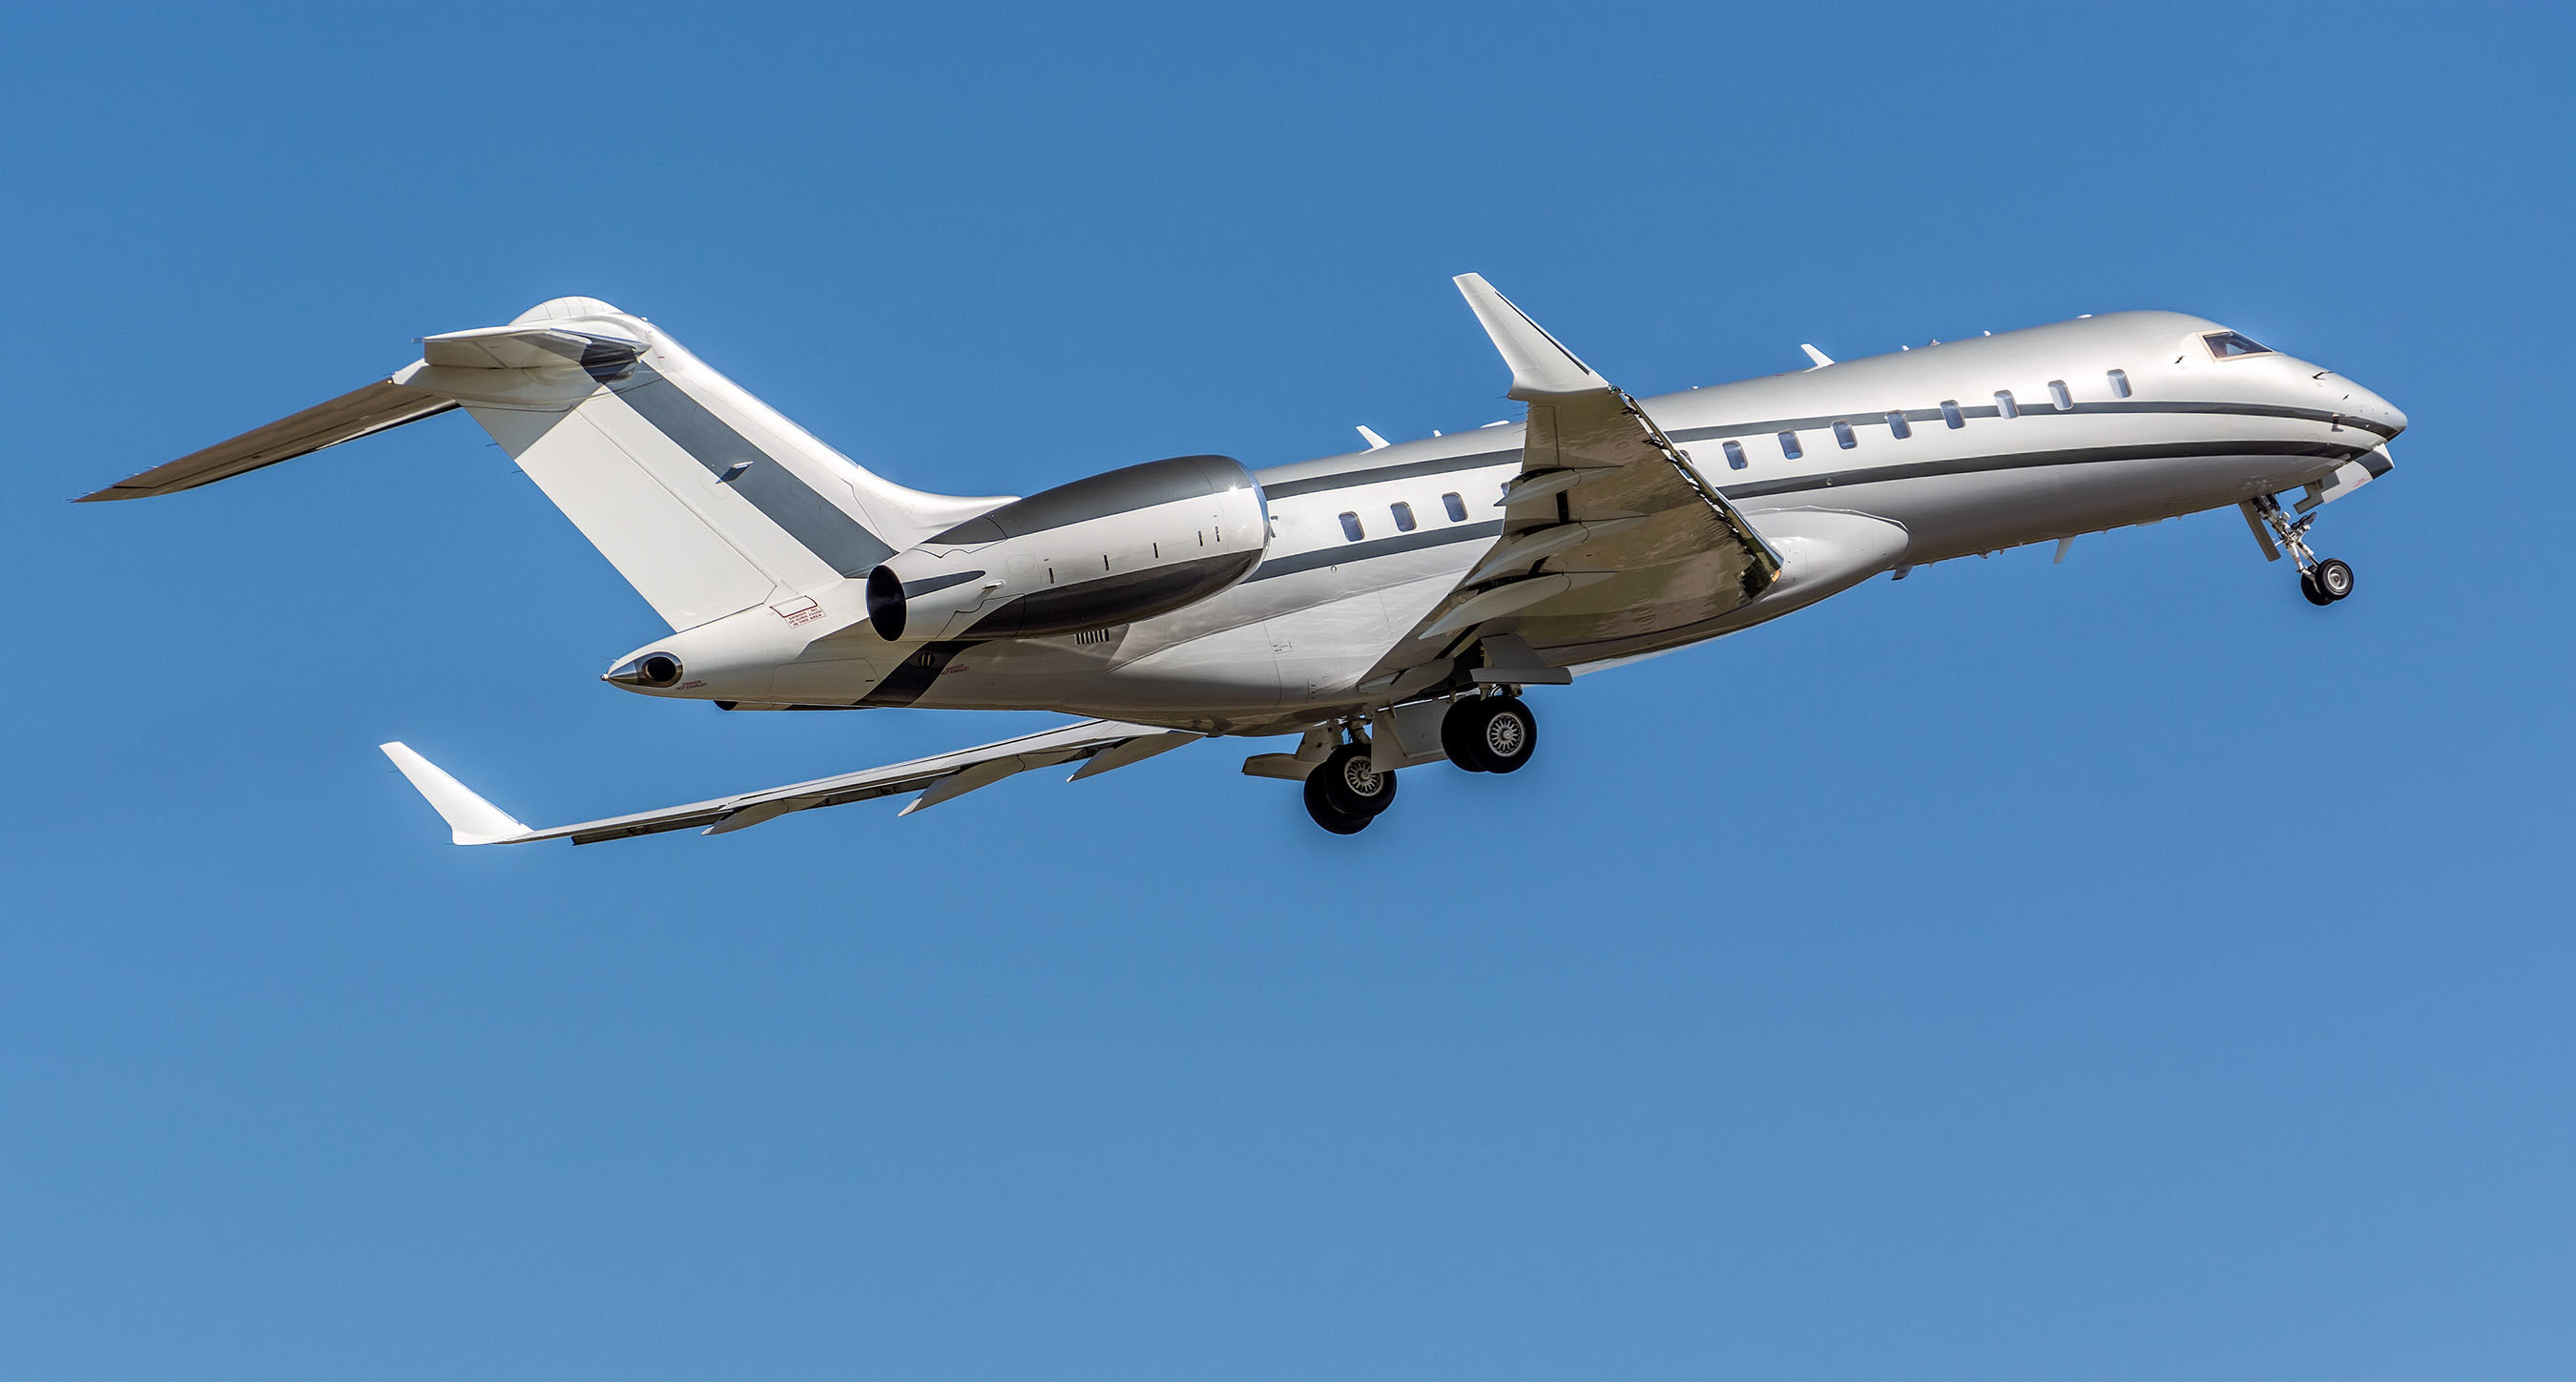 ALERIS HONORED WITH DIAMOND SUPPLIER CERTIFICATION BY BOMBARDIER